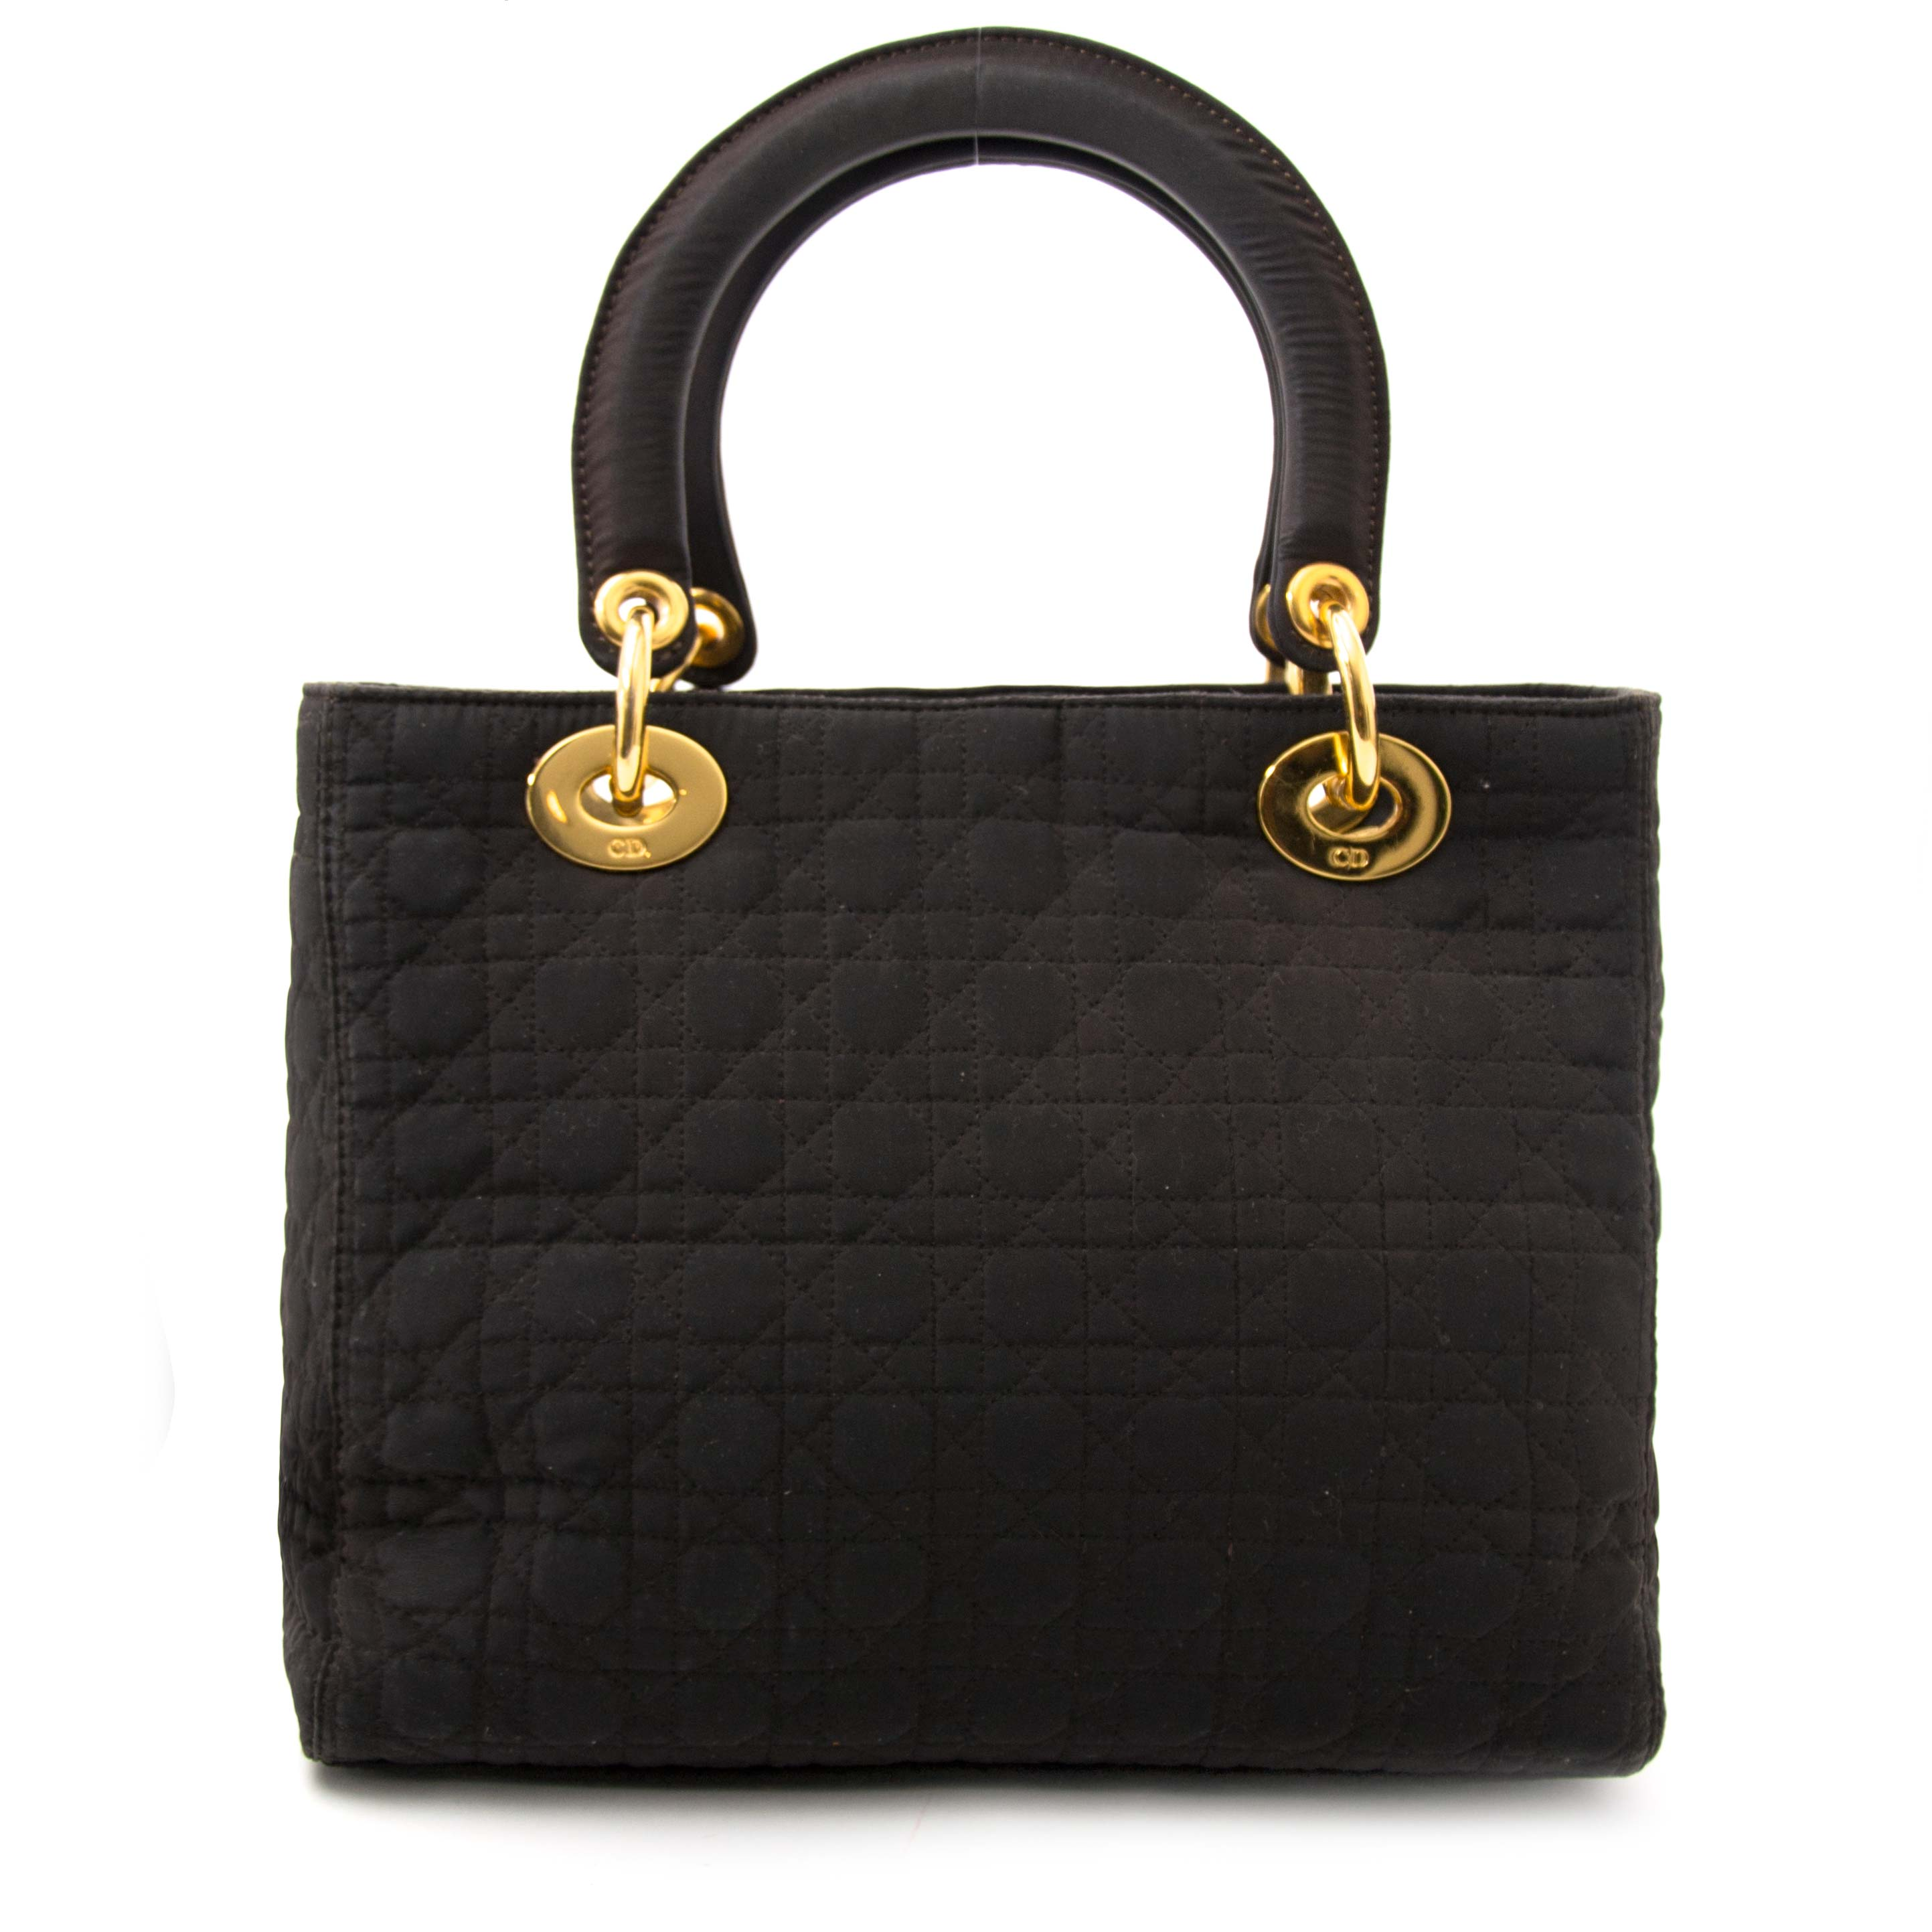 Buy authentic secondhand bag online at Labellov